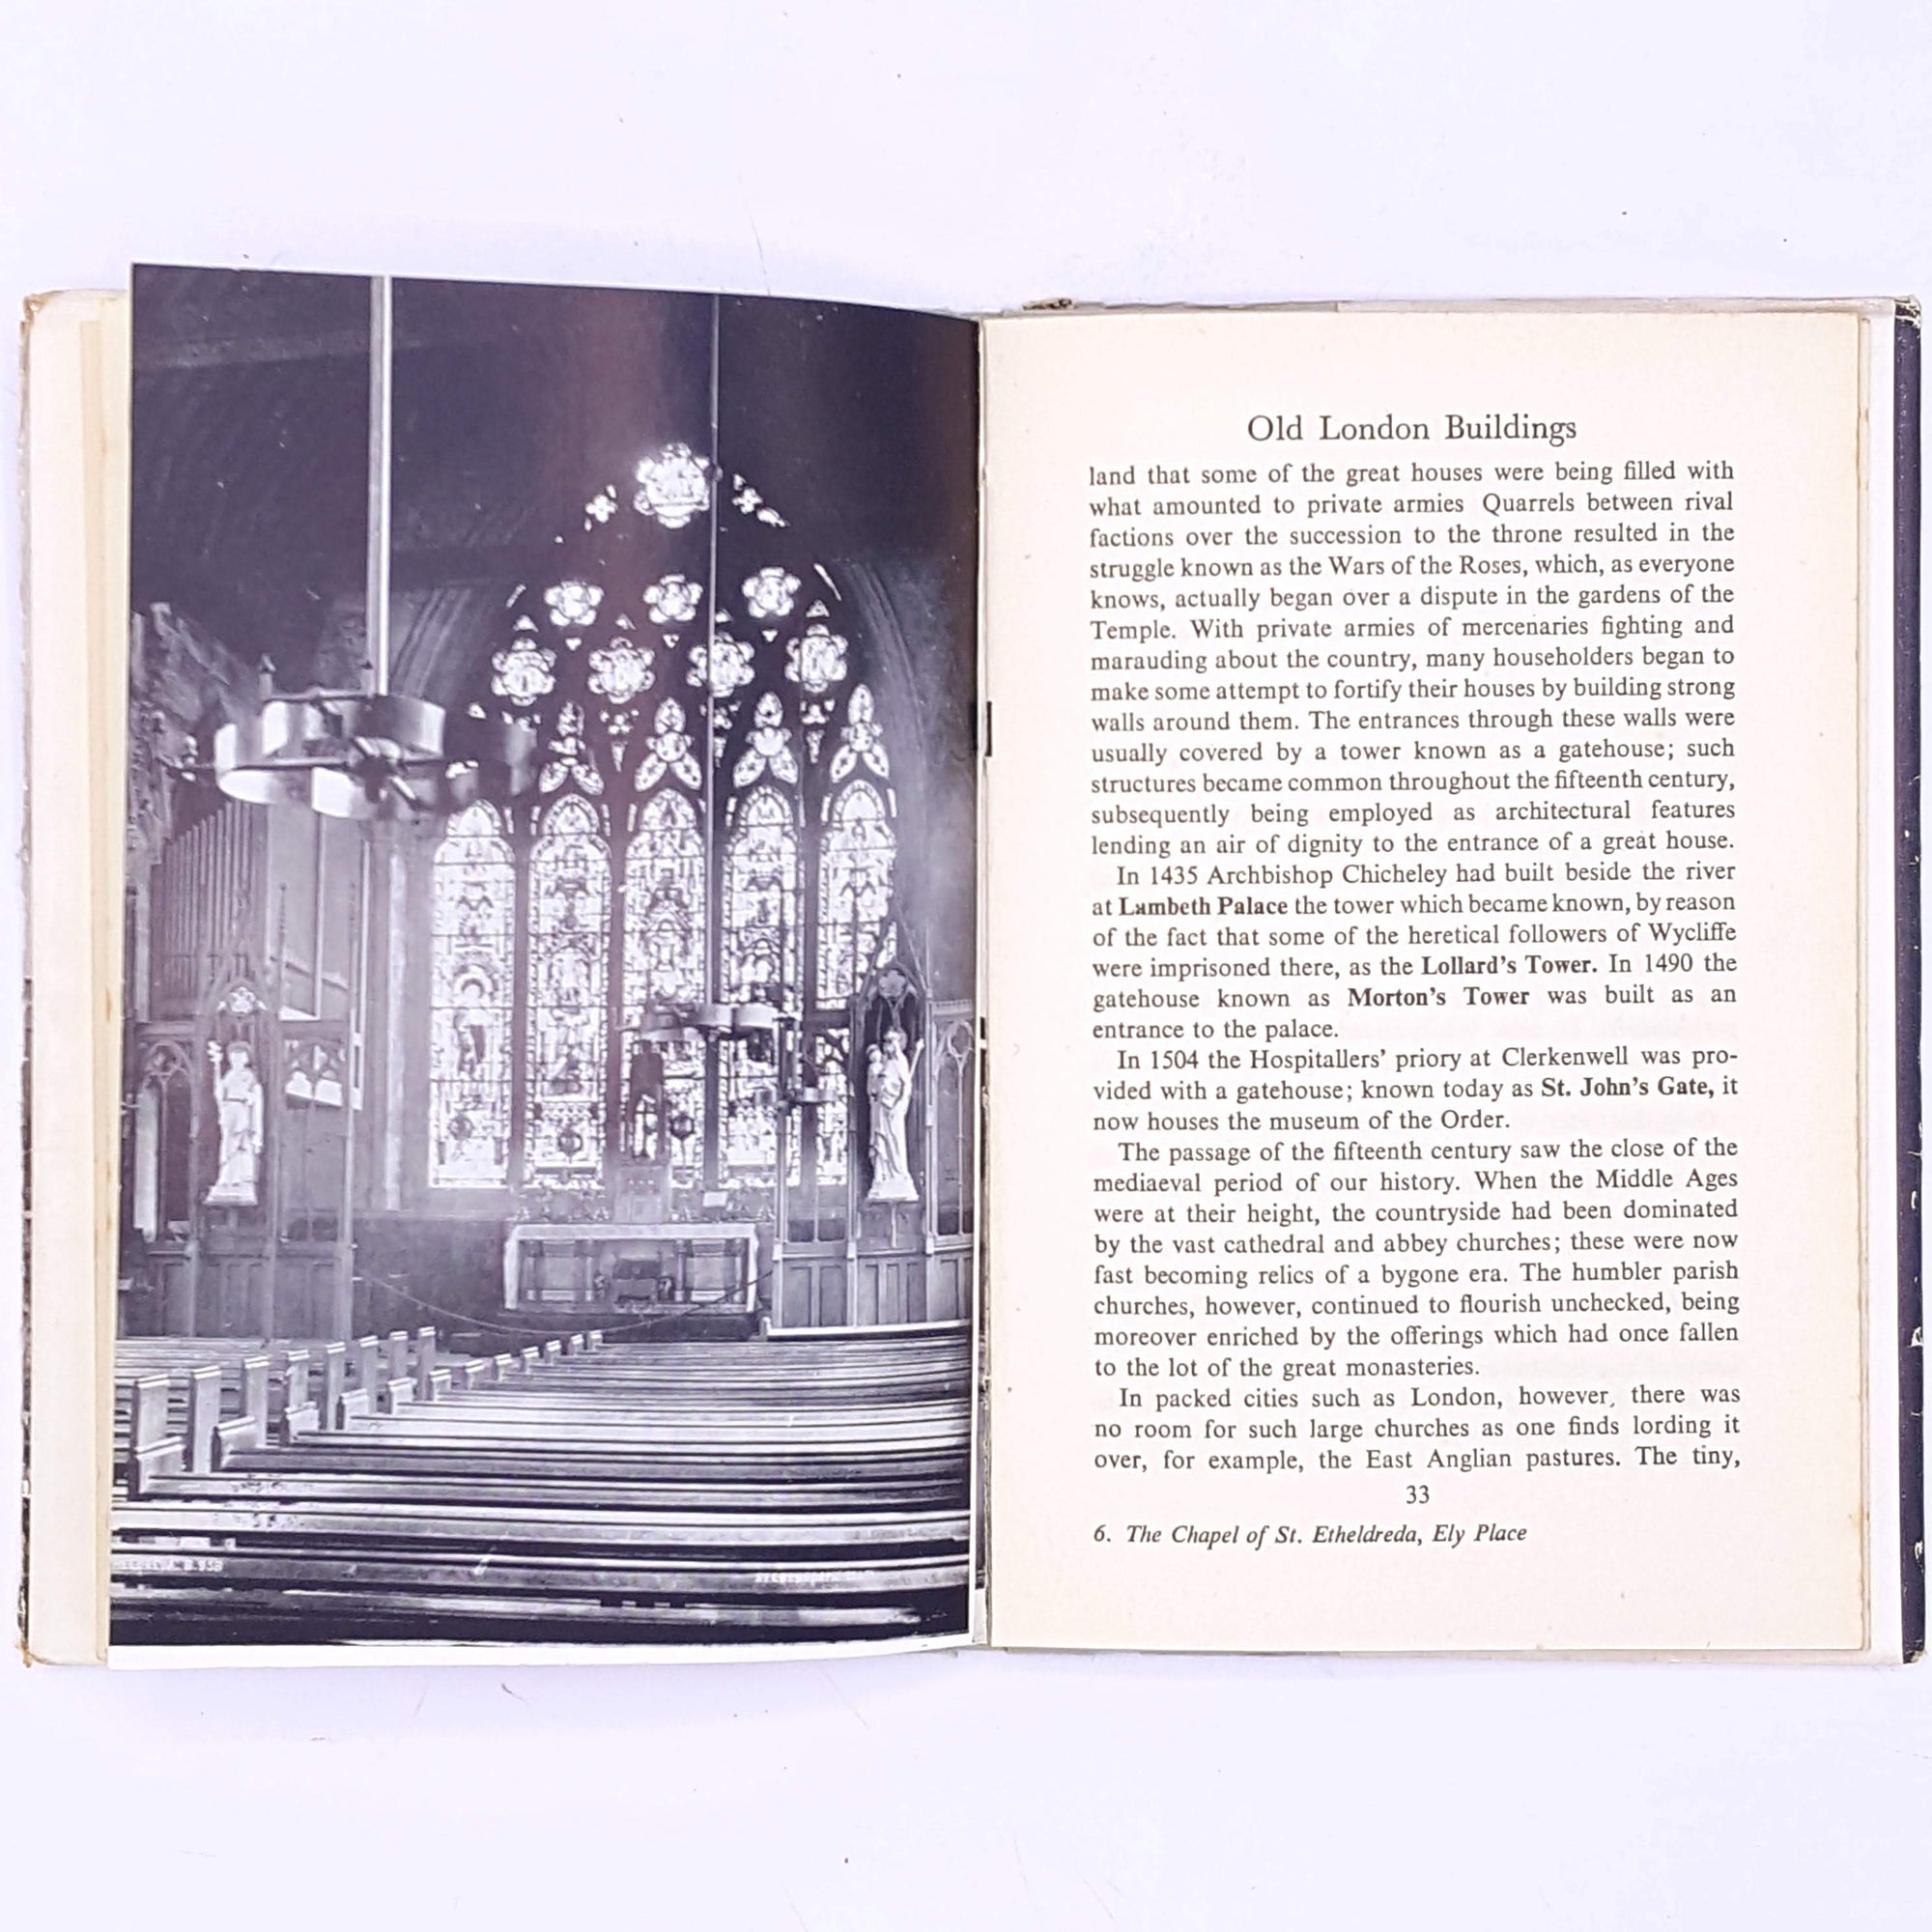 decorative-classic-thrift-vintage-patterned-history-books-old-london-buildings-london-hugh-braun-country-house-library-old-antique-